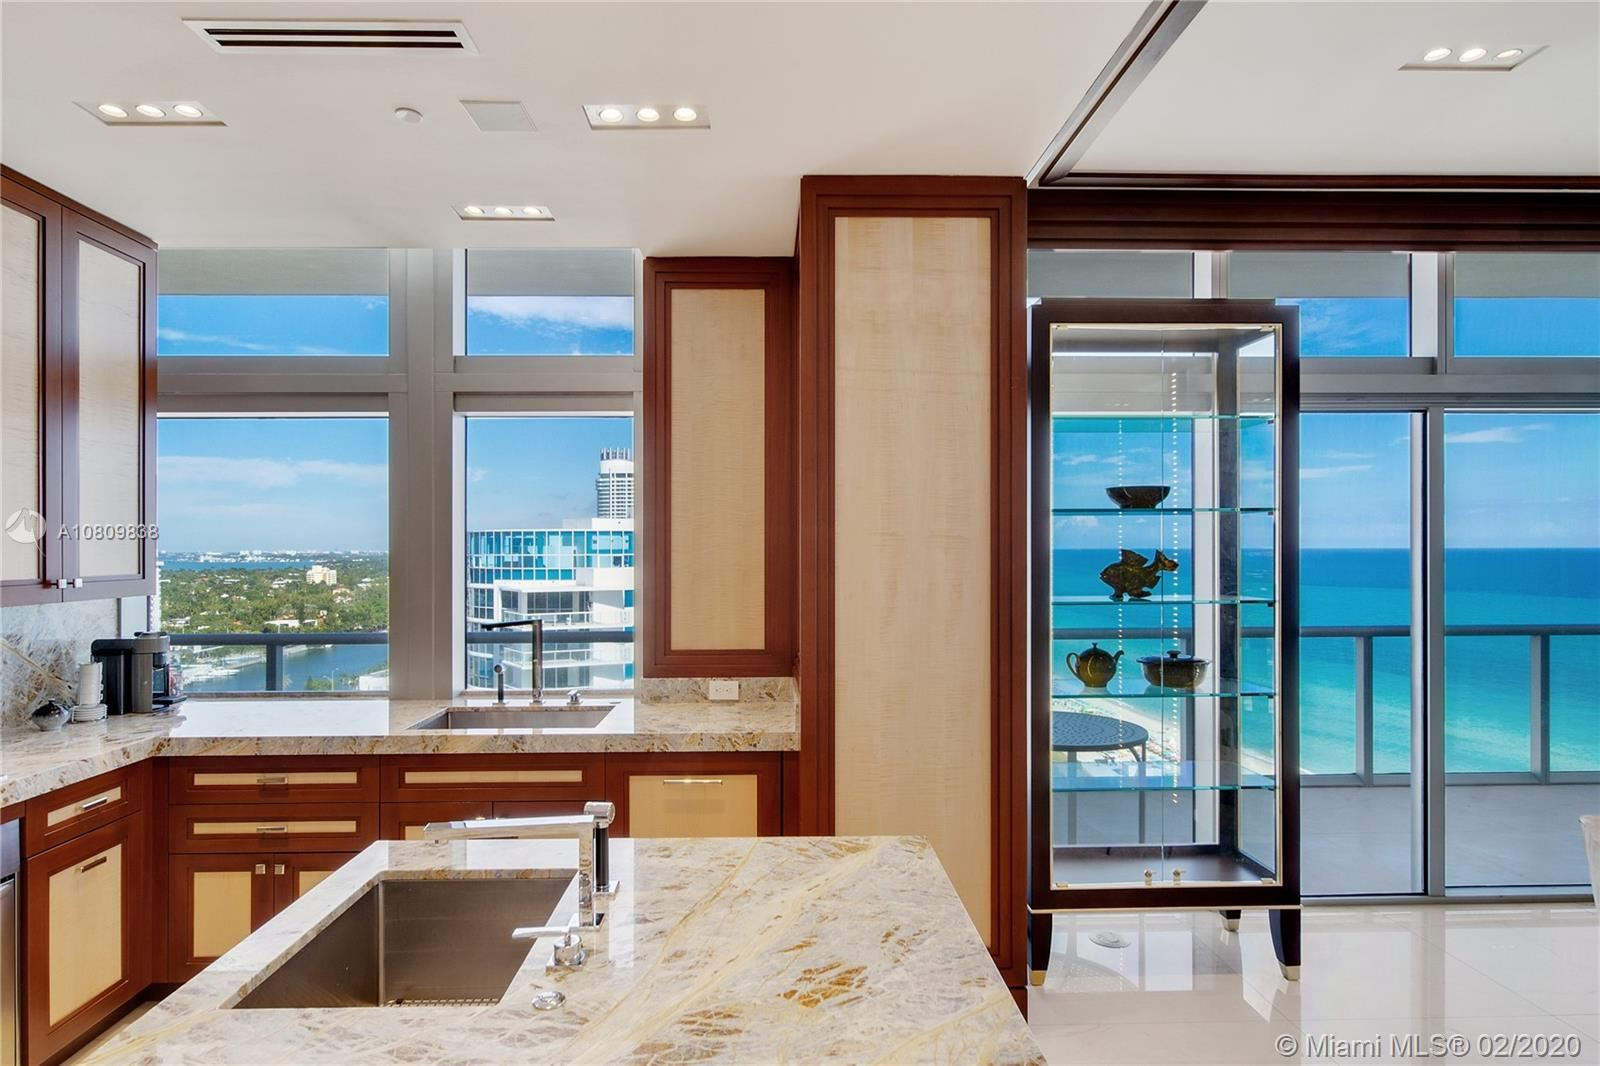 Photo 12 of Listing MLS a10809838 in 3737 Collins Ave #PH-4 Miami Beach FL 33140